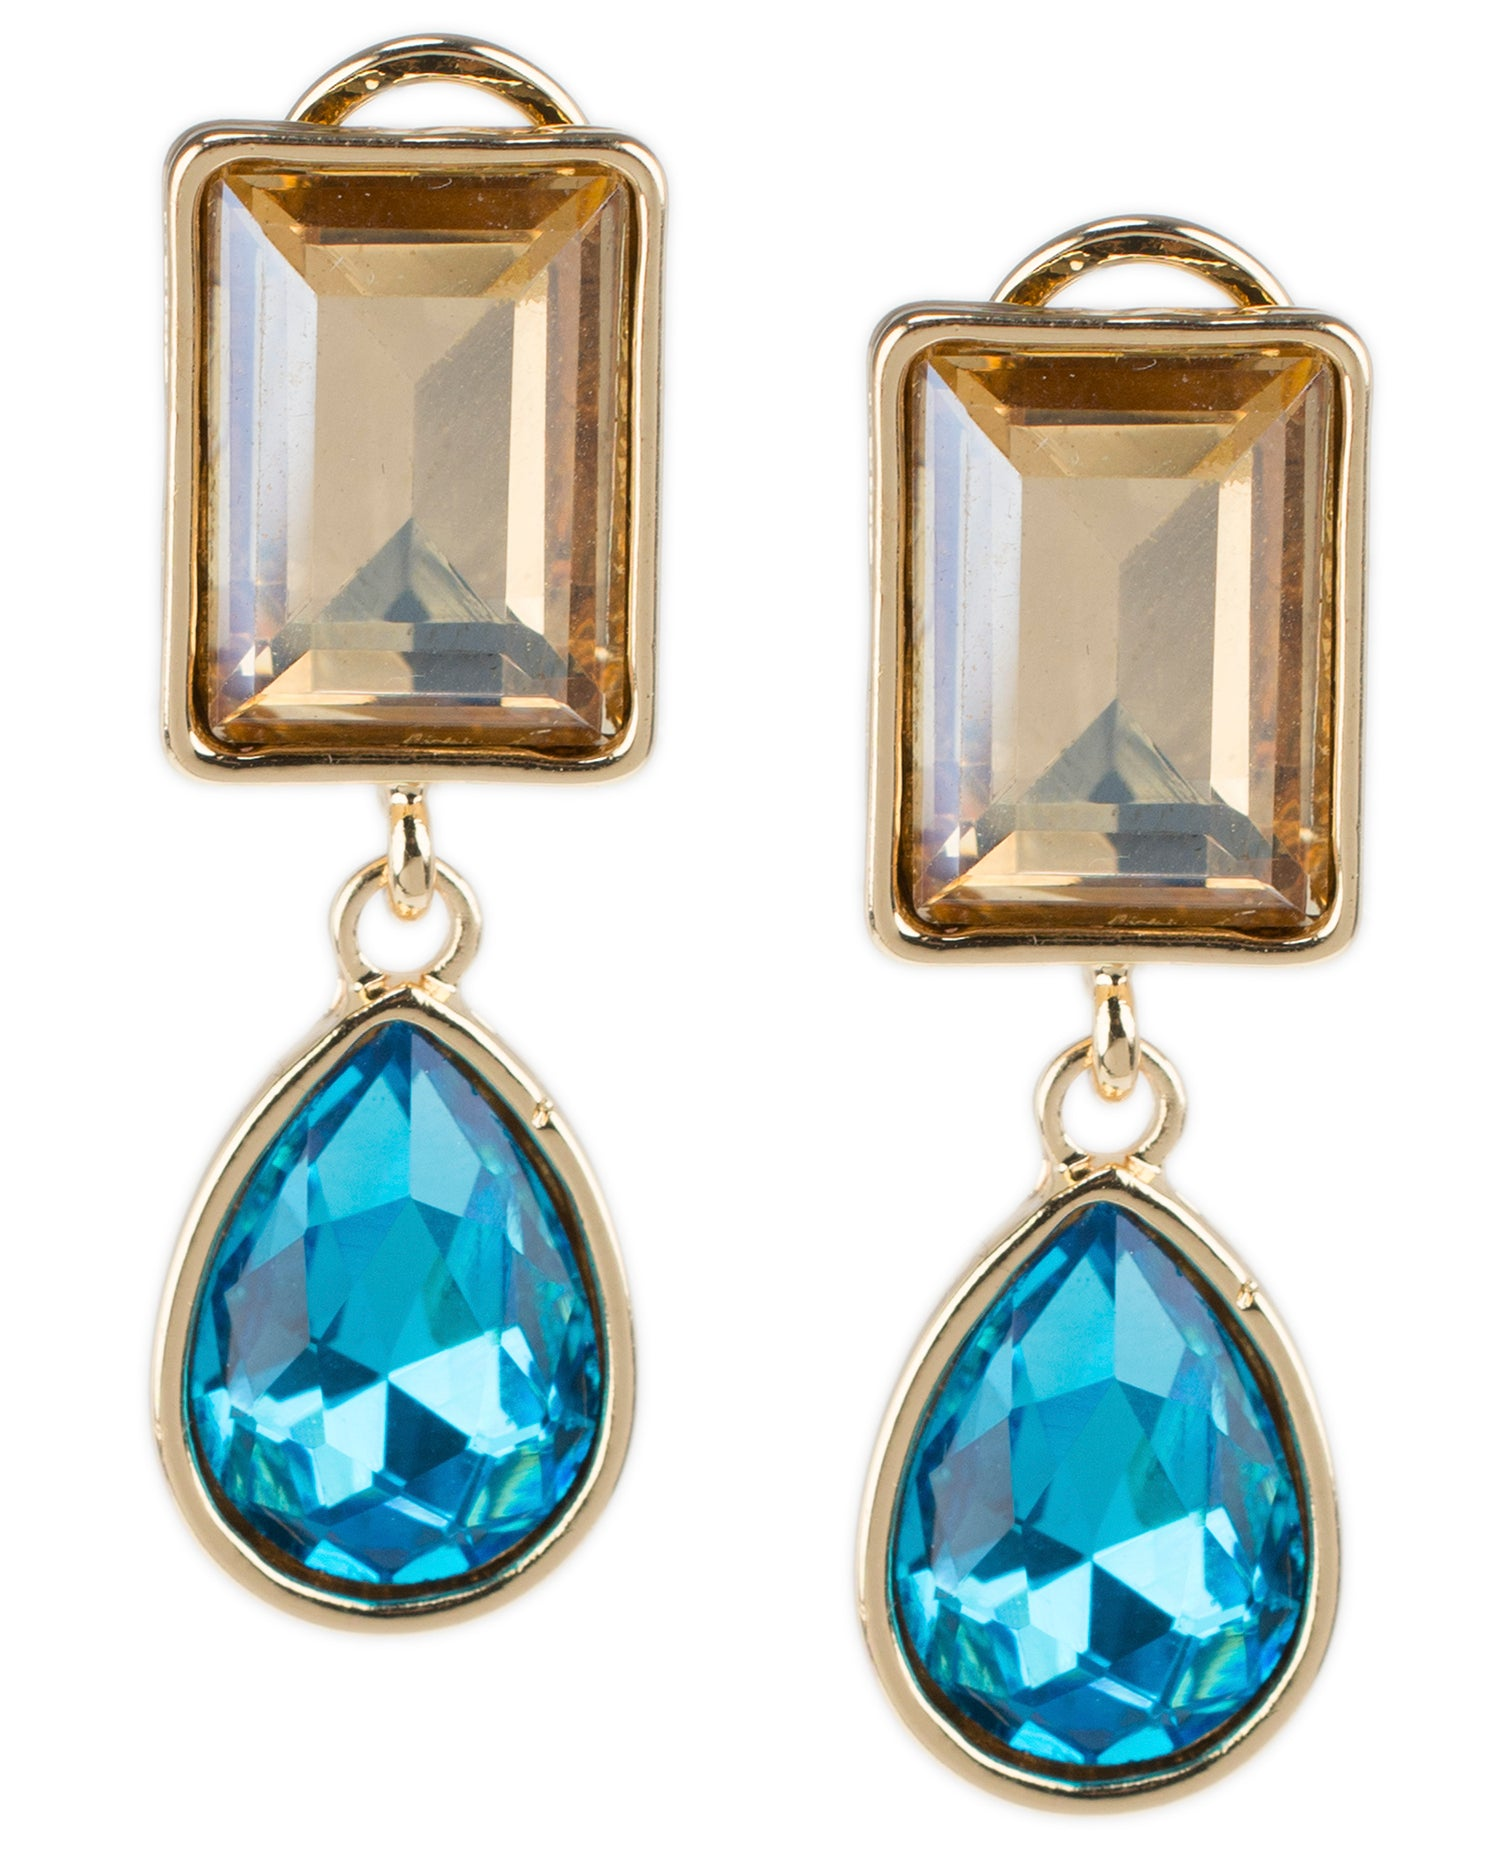 Champagne and Aqua Double Drop Earrings